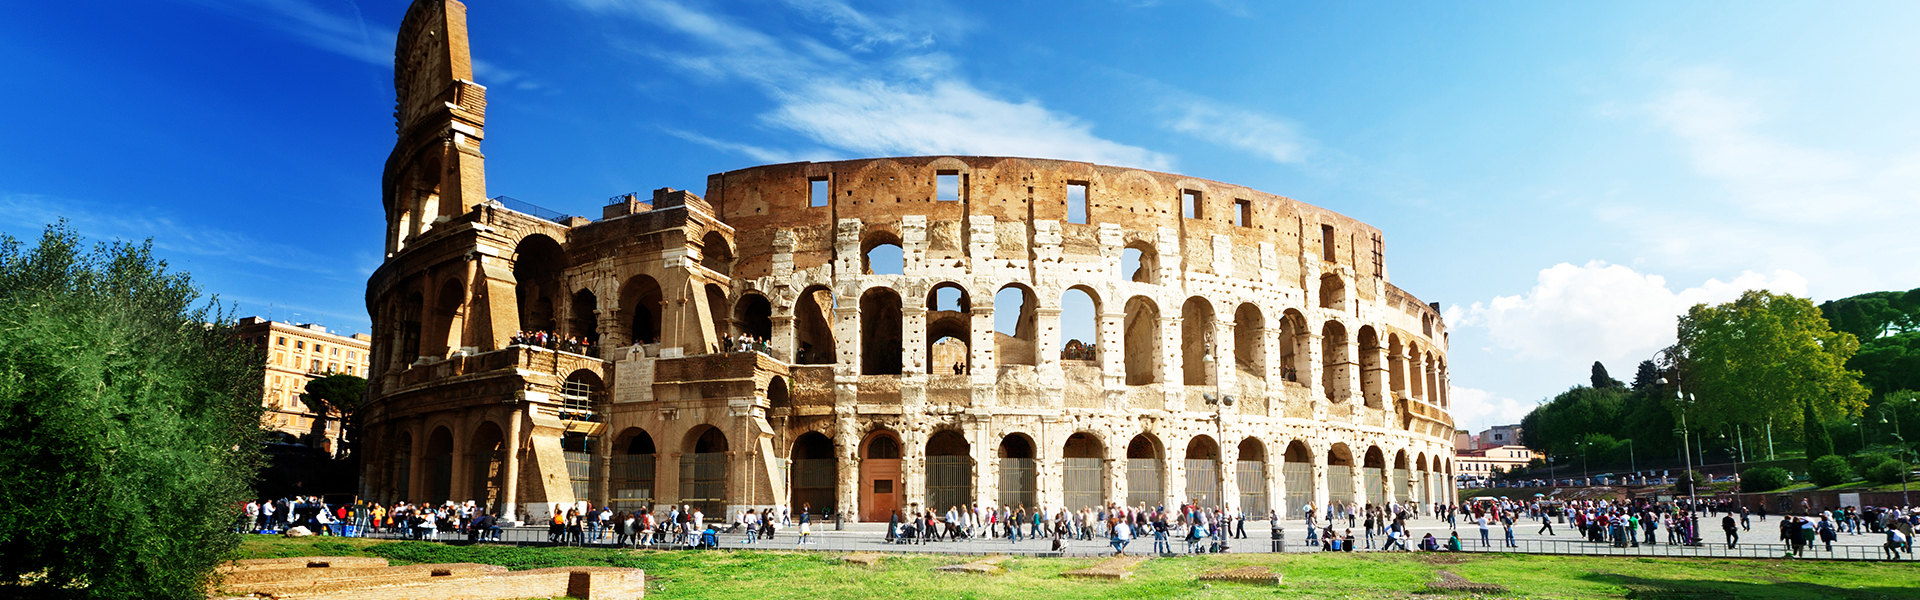 Vacation_italy coliseum.jpg